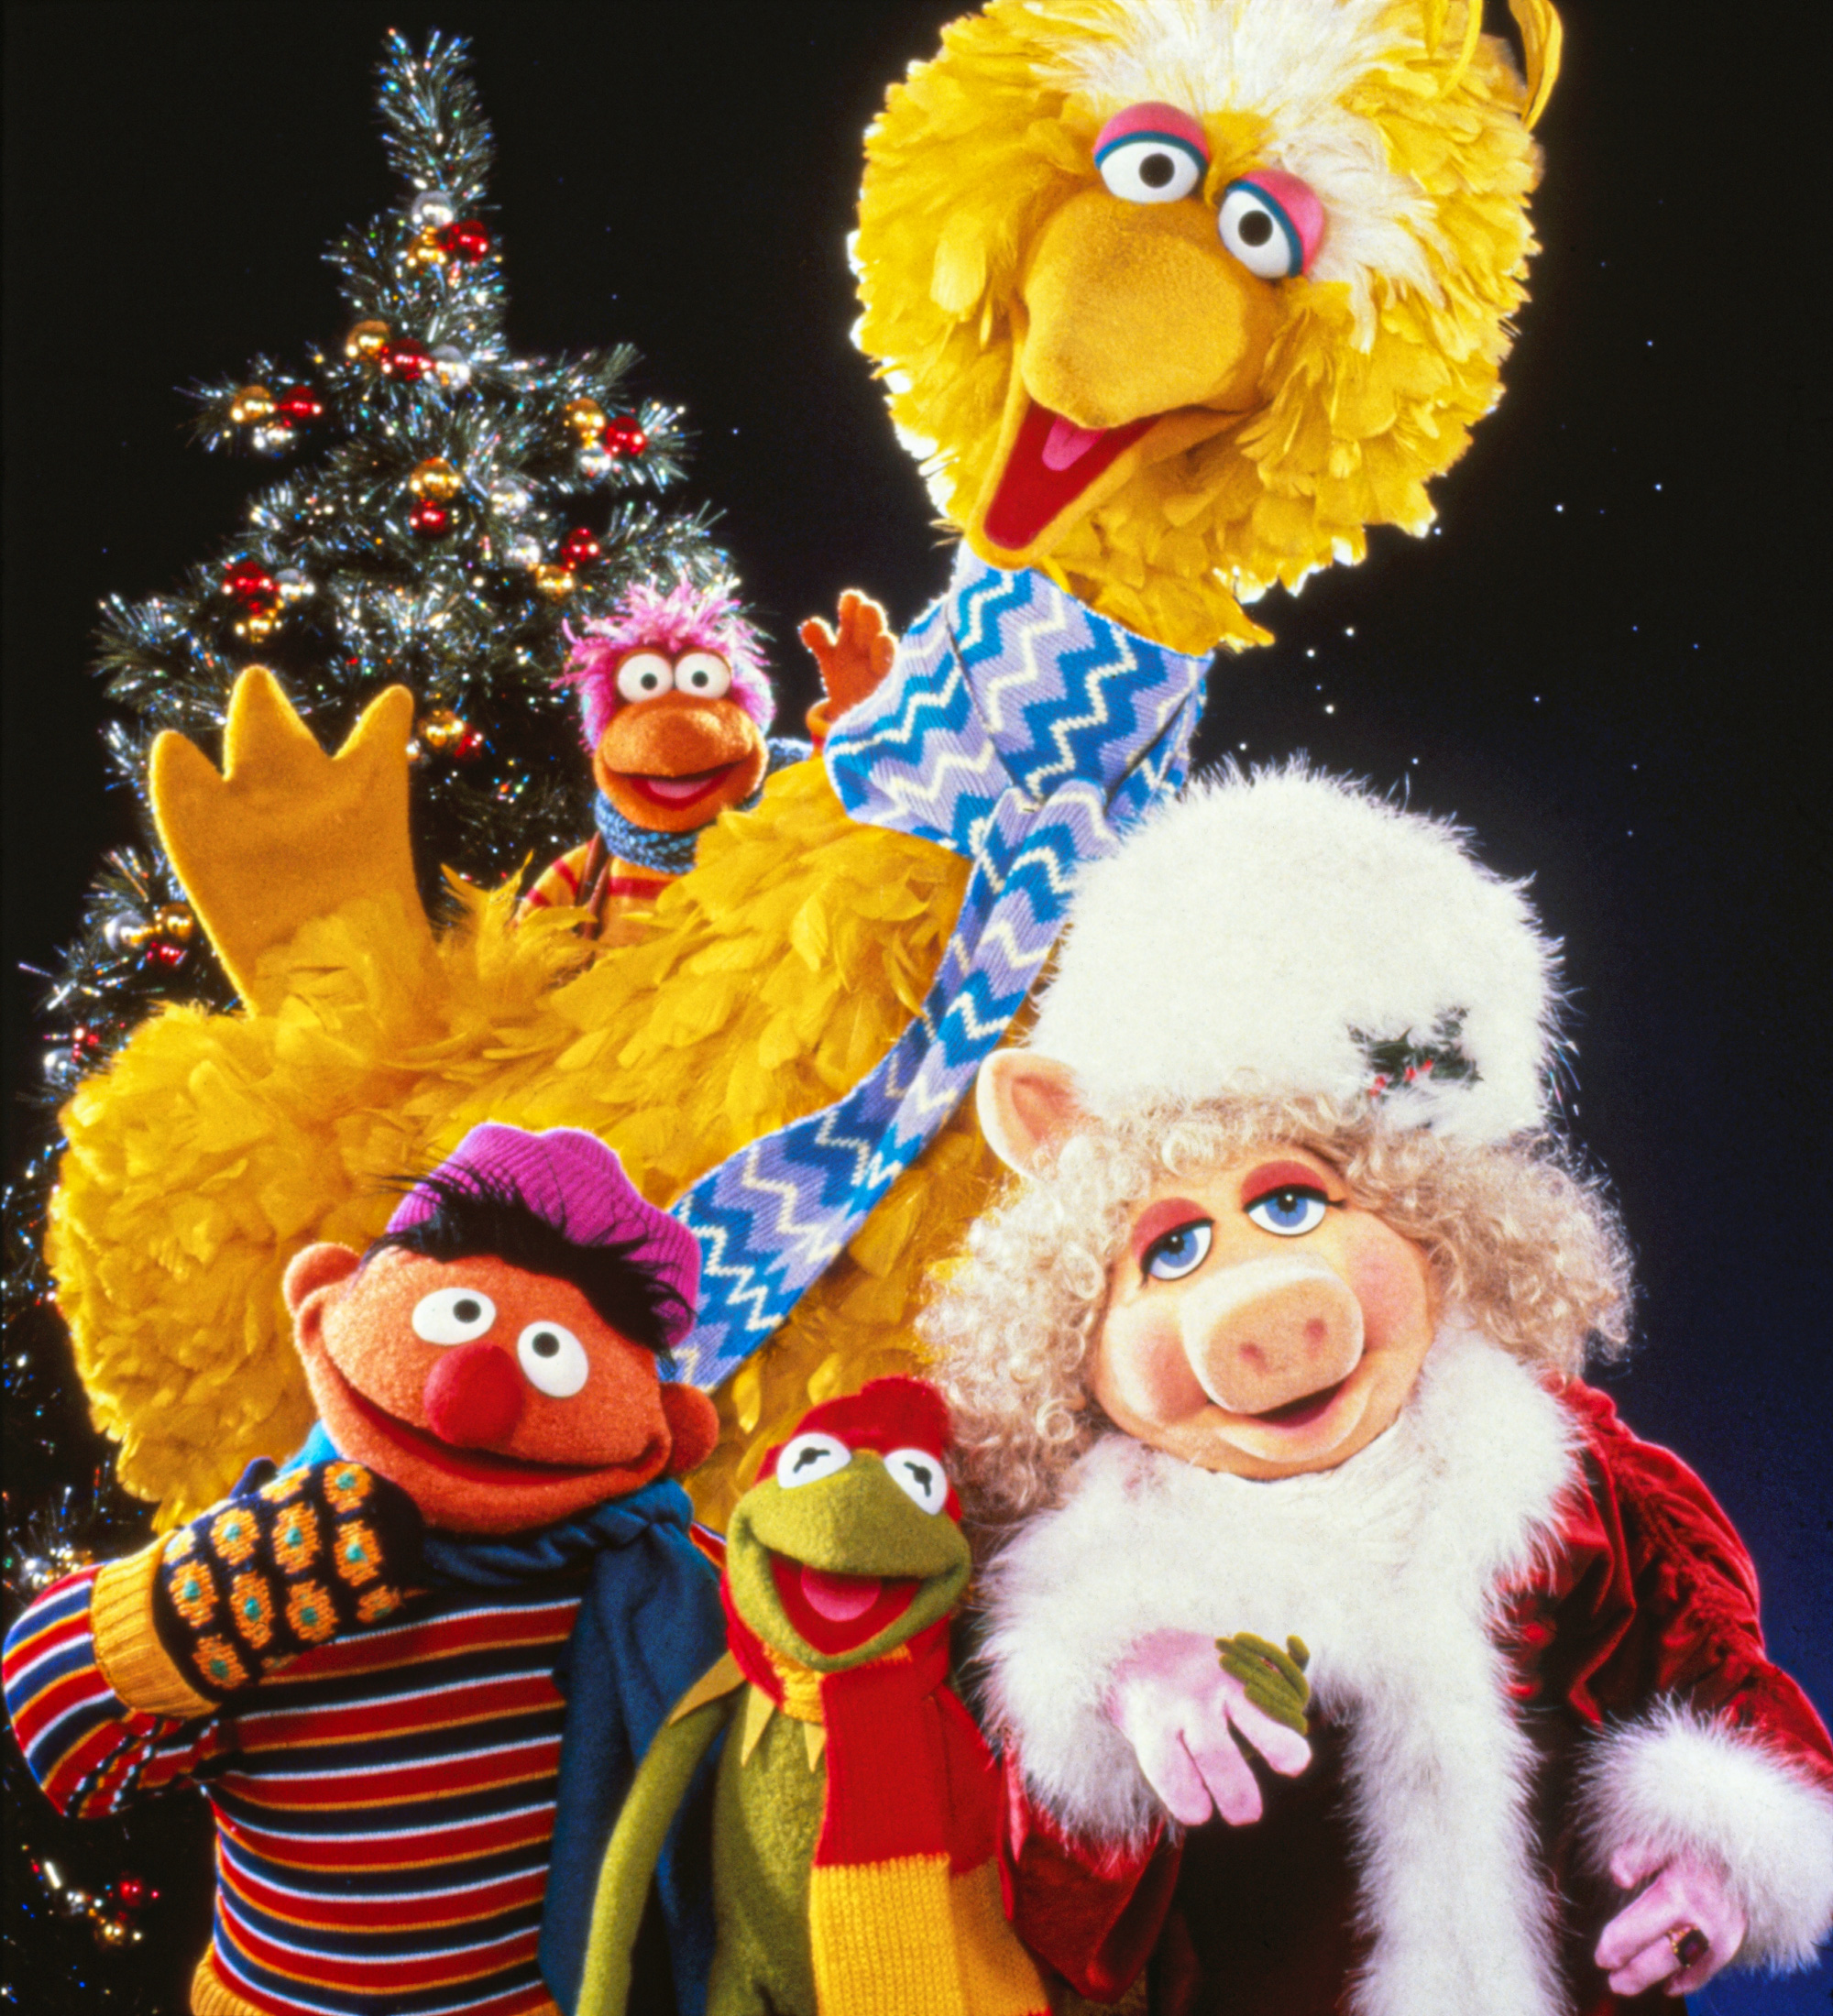 a muppet family christmas is a tv special that premiered on december 16 1987 on abc